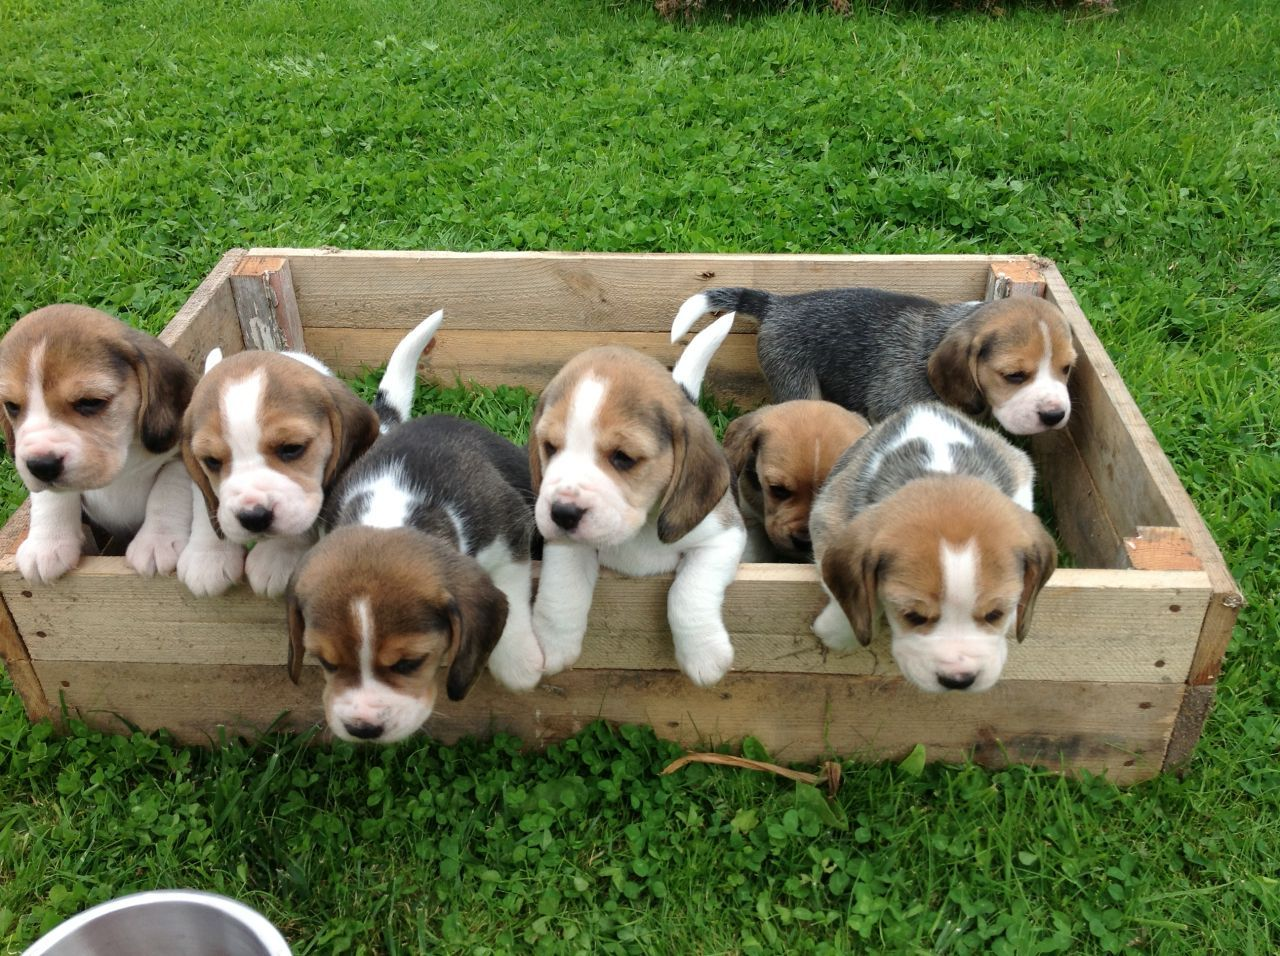 Beagles are loyal, friendly, and playful family dogs. They